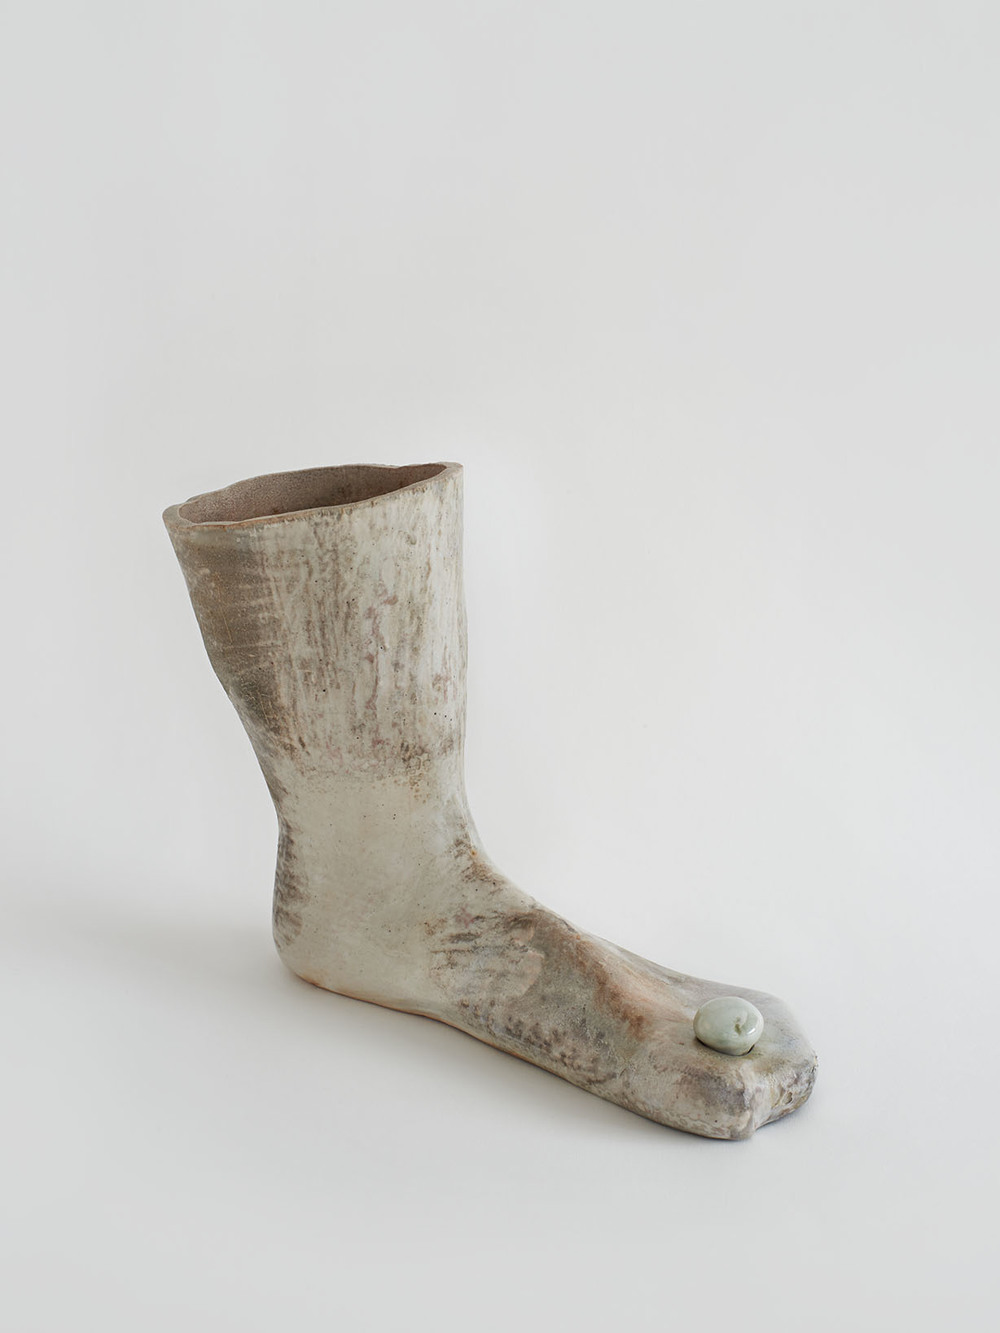 Kristen Jensen,  Like a Pearl Between Her Toes,  2013 - 2014, Anagram fired porcelain with shino and luster glaze